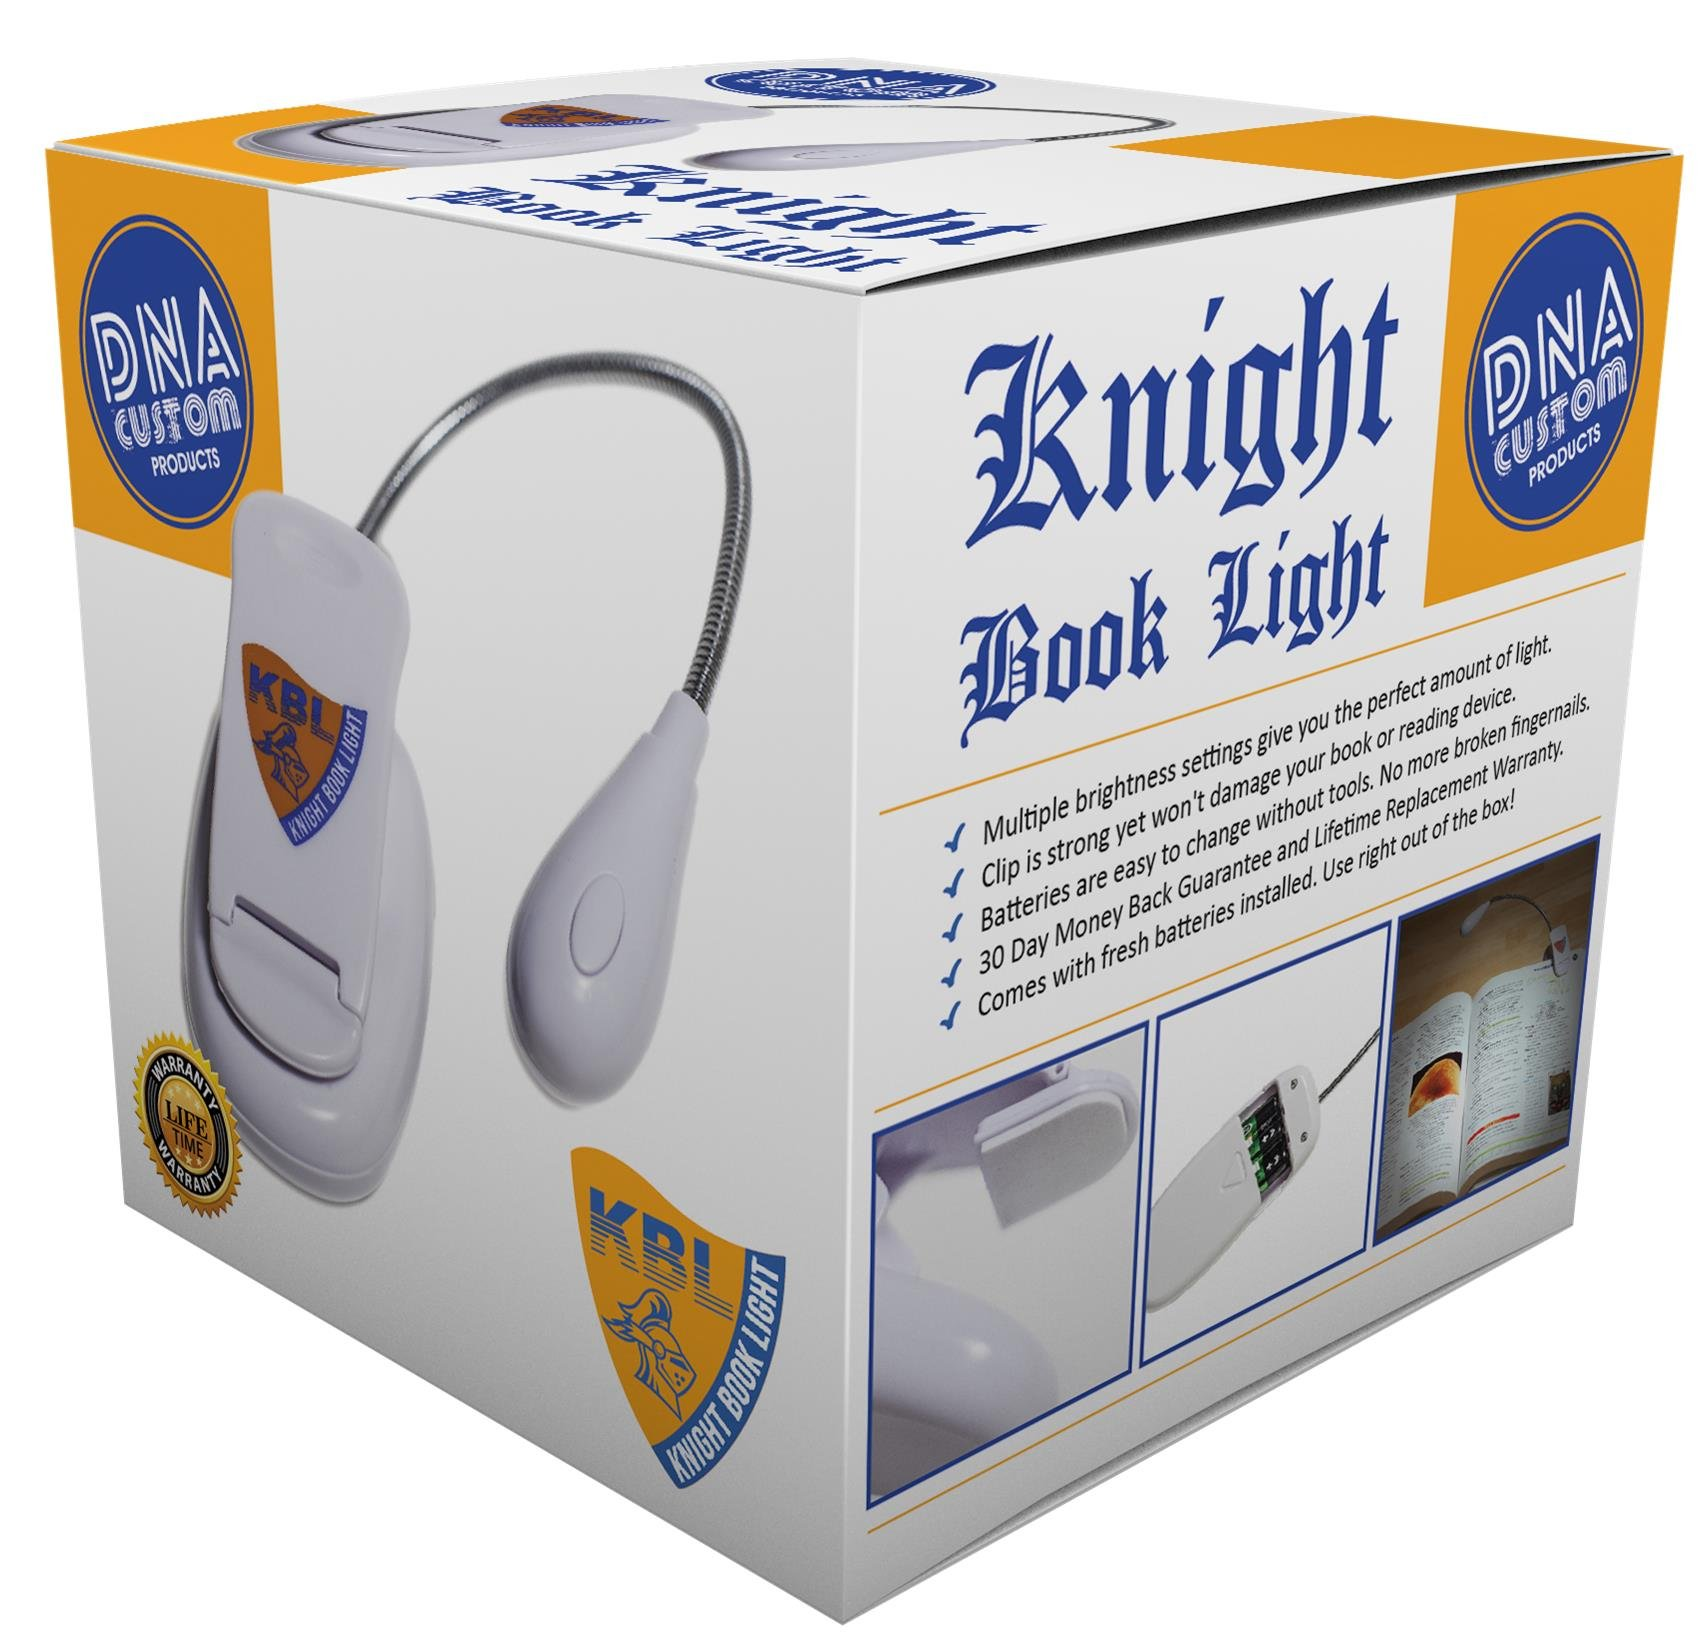 Knight Book Light - 2 LED settings for Reading in Bed. Lightweight and Flexible lamp. Batteries Included!